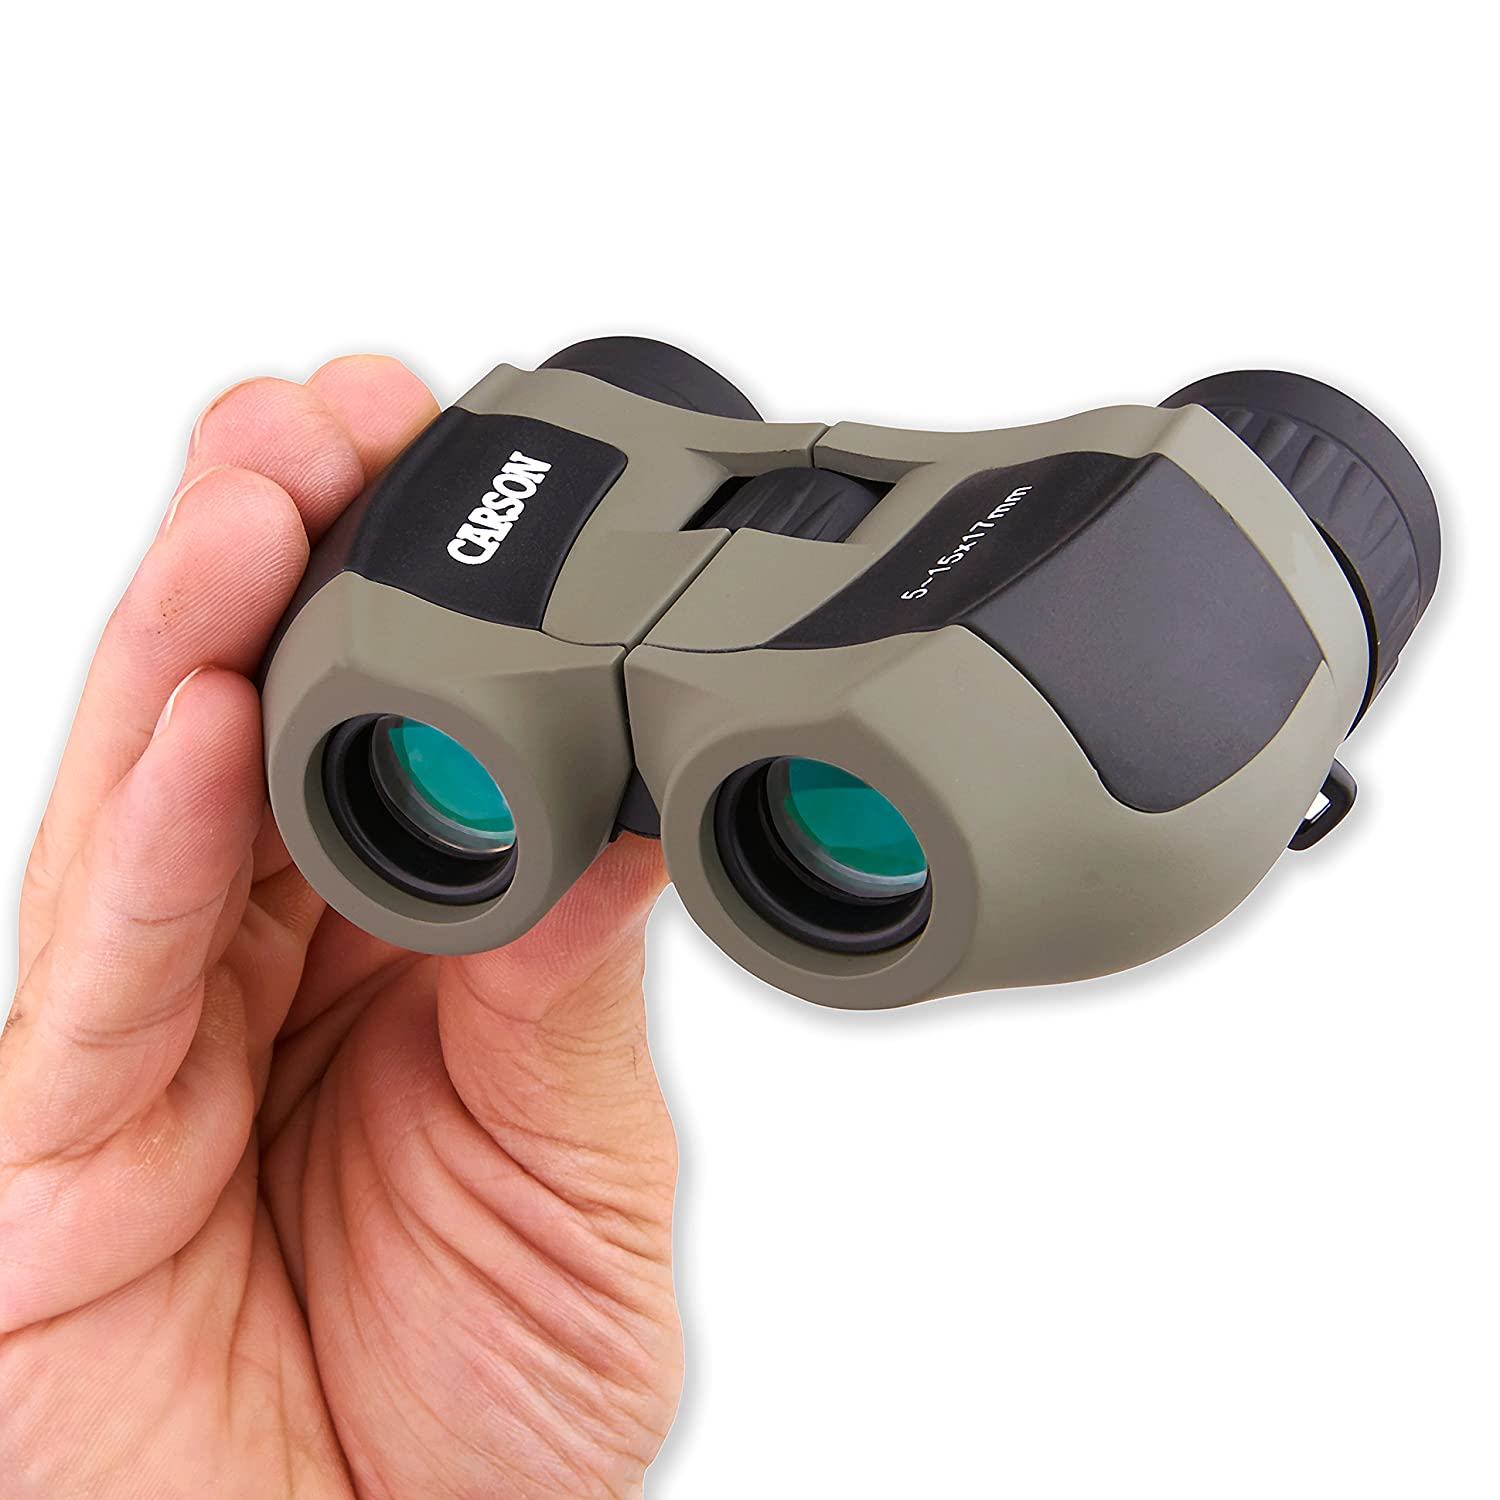 Amazon.com: Carson MiniZoom 5-15x17mm Ultra Compact and Lightweight Zoom  Binoculars for Travel, Bird Watching, Hiking, Camping, Surveillance,  Sight-Seeing, ...